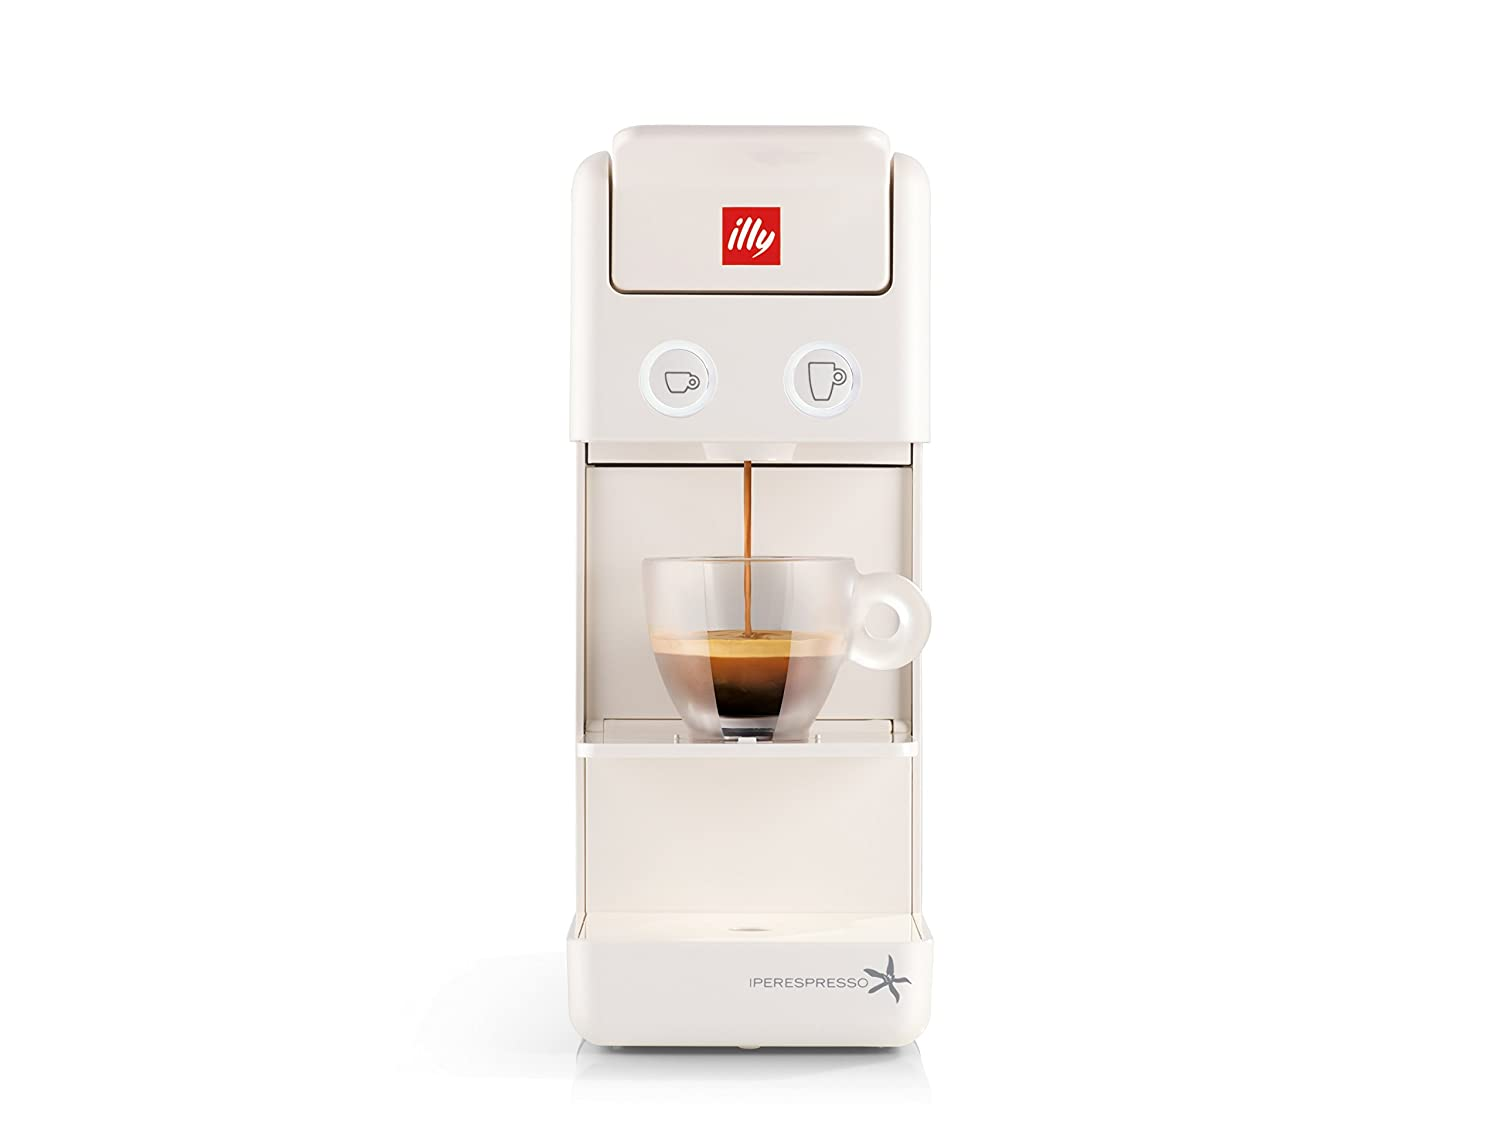 Capsule coffee Machine ILLY model Y3.2 Iperespresso color White, coffee machine illy iperespresso Y3.2, capsule machine ideal for espresso coffee and american coffee